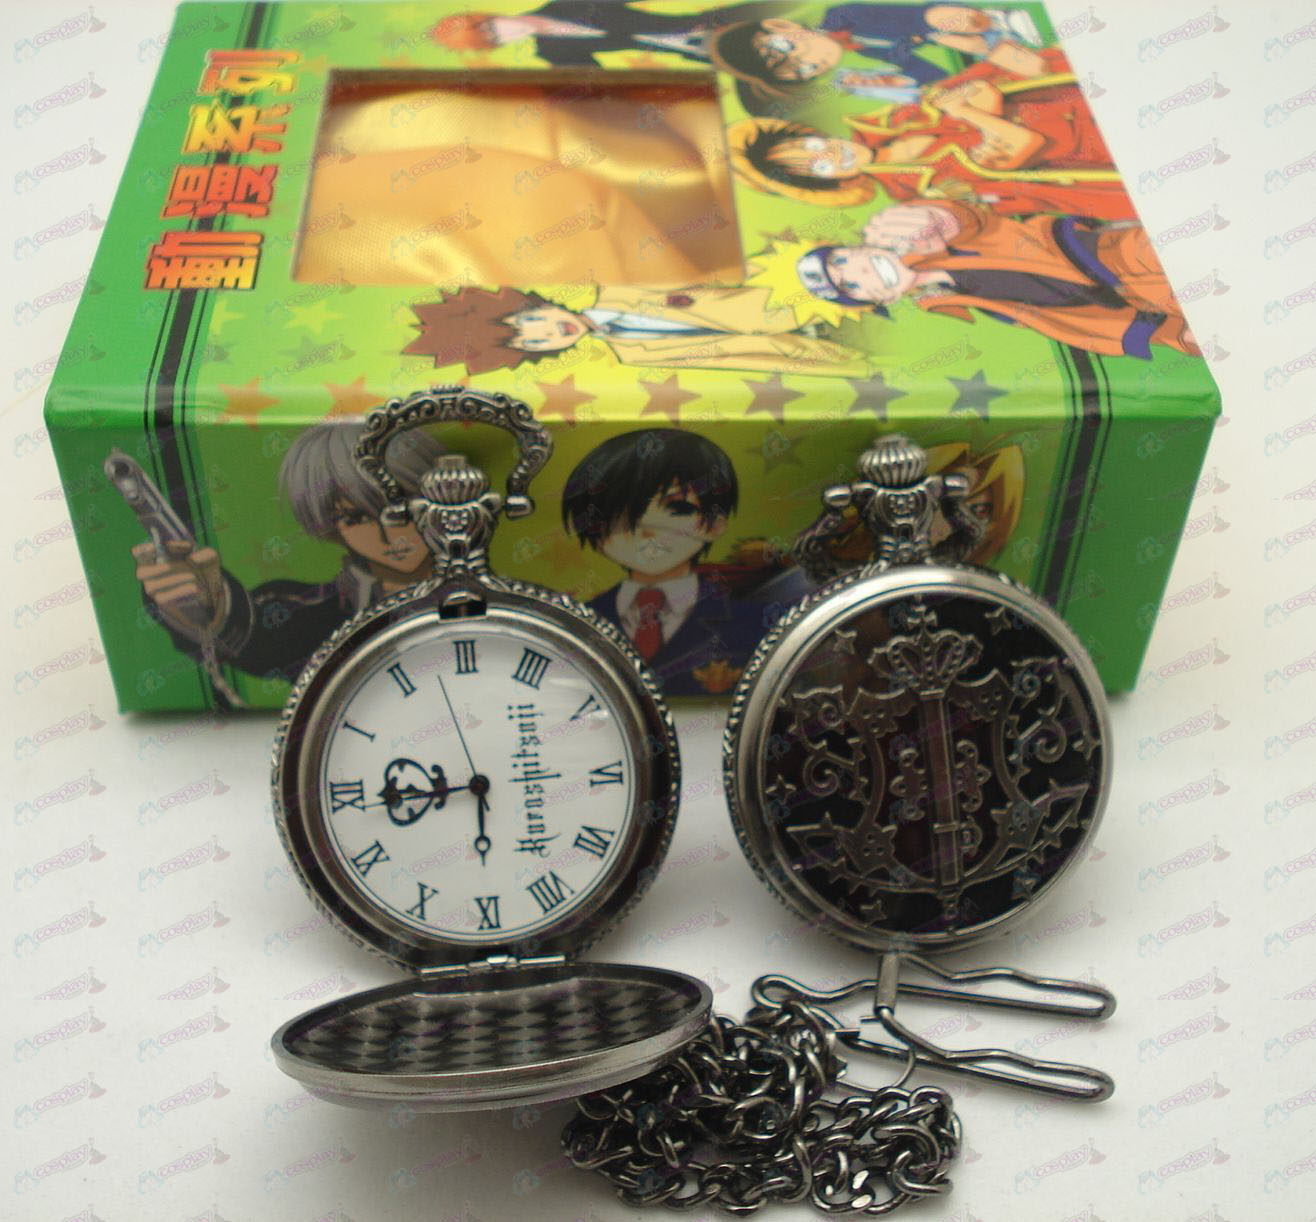 Black Butler Accessories Pocket Watch + Card